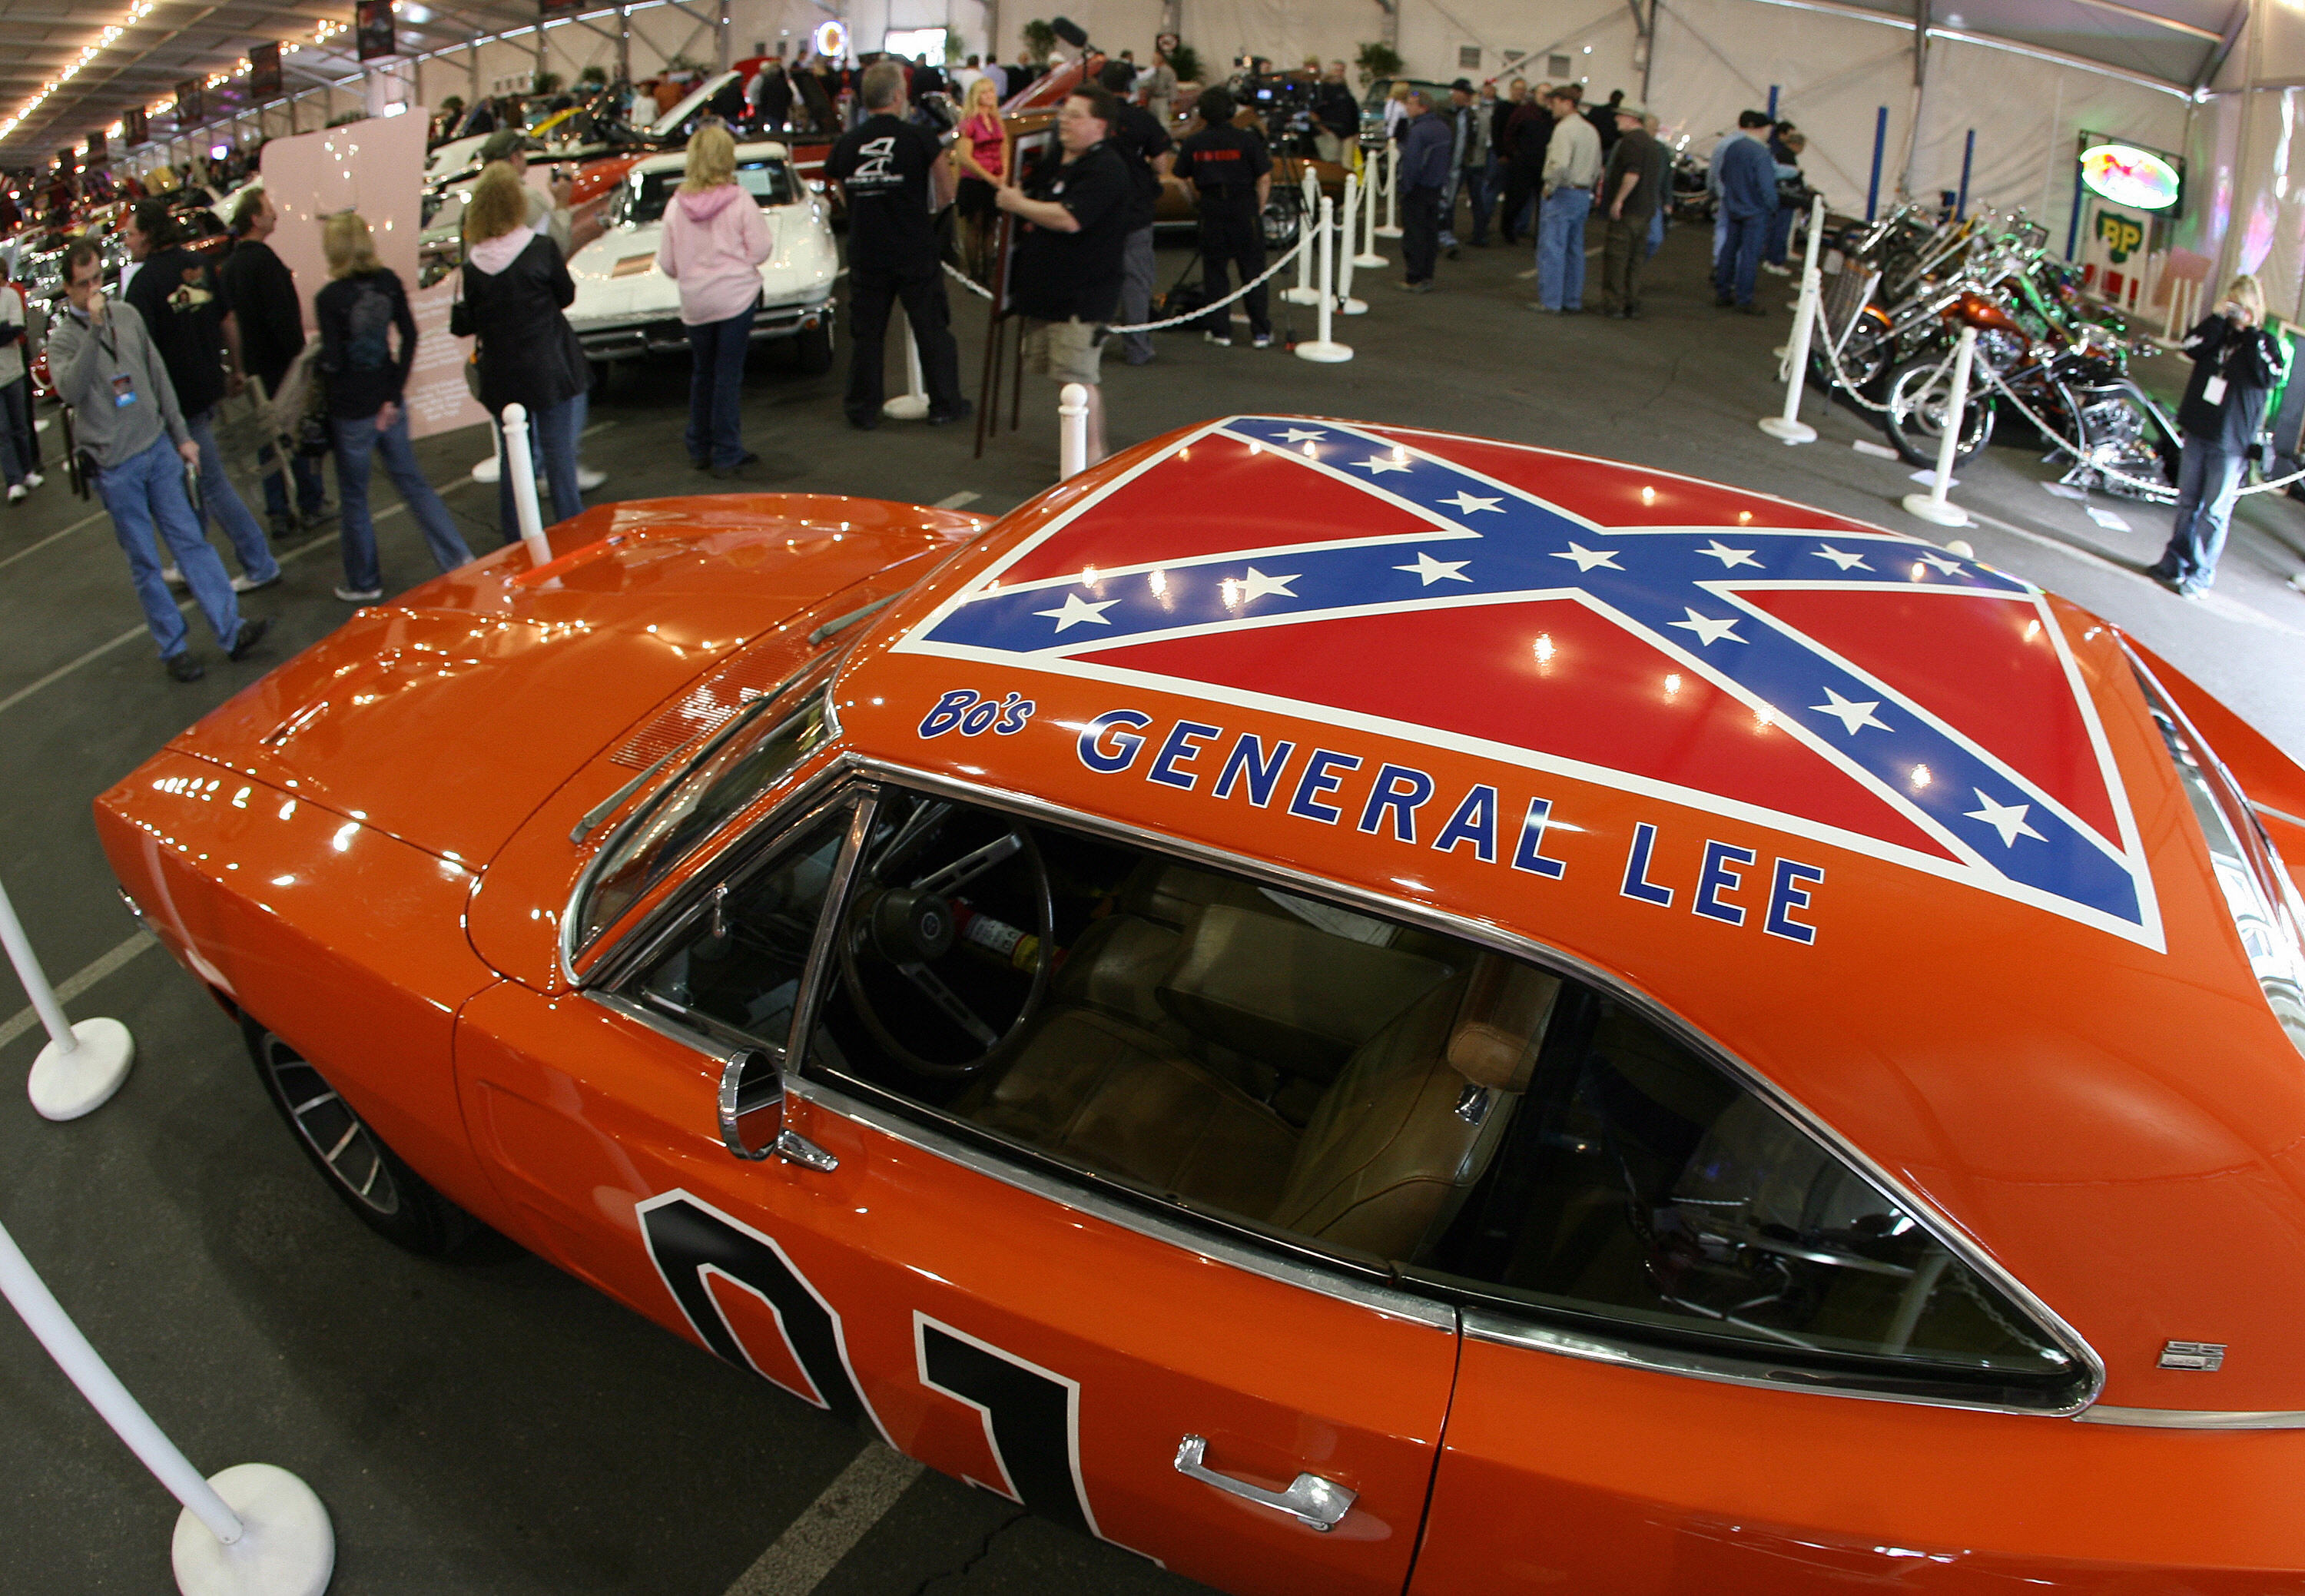 A 1969 Dodge Charger, dubbed 'The General Lee' from the TV series 'The Dukes of Hazzard', is displayed during the 37th Annual Barrett-Jackson Collector Cars auction in Scottsdale, Arizona, 16 January 2008. The Barrett-Jackson auction company specializes in classic and collectors cars, and their auction in Scottsdale is the world's largest collector car event.